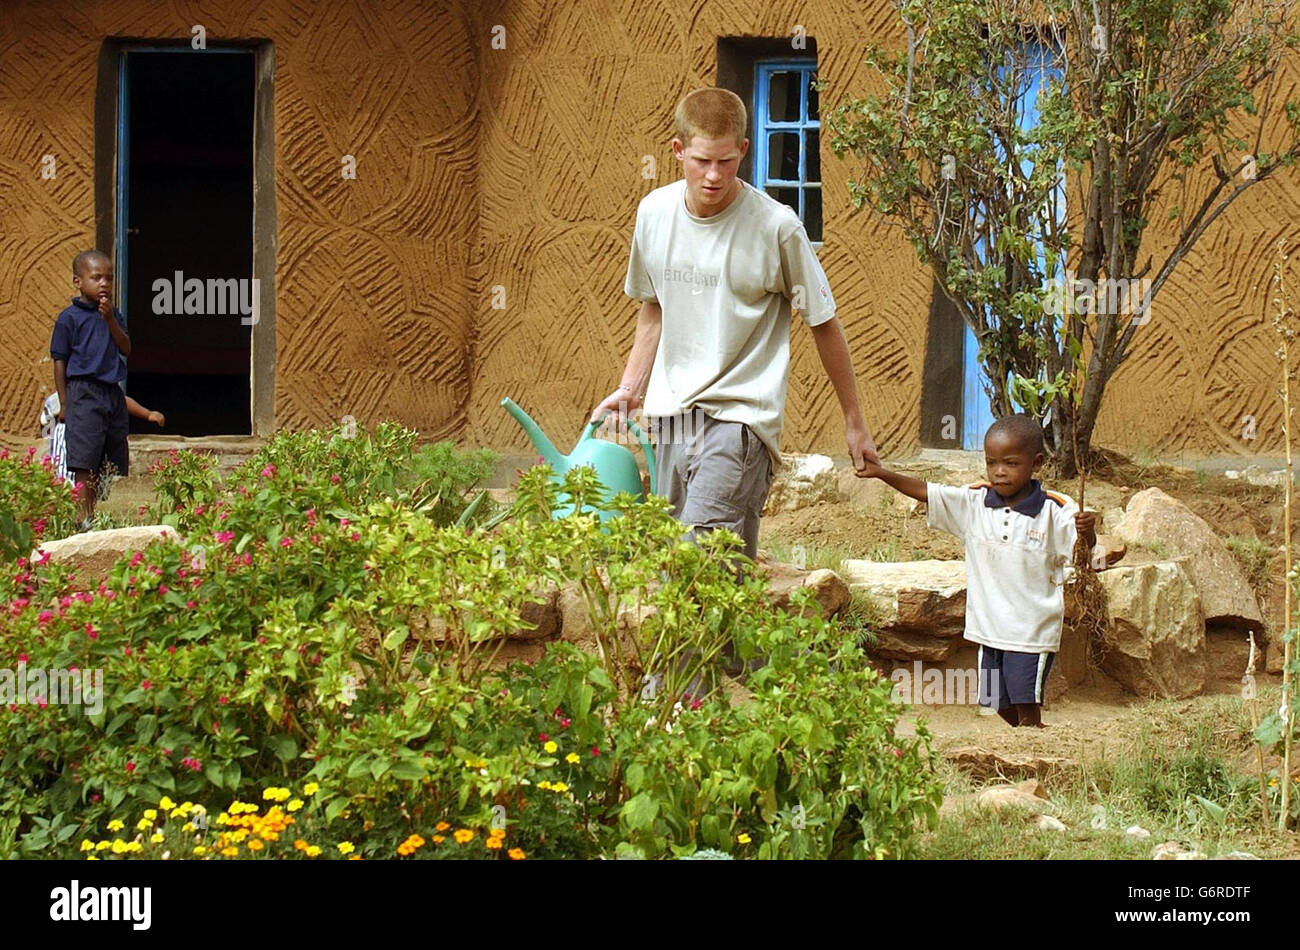 Prince Harry in Lesotho - Stock Image